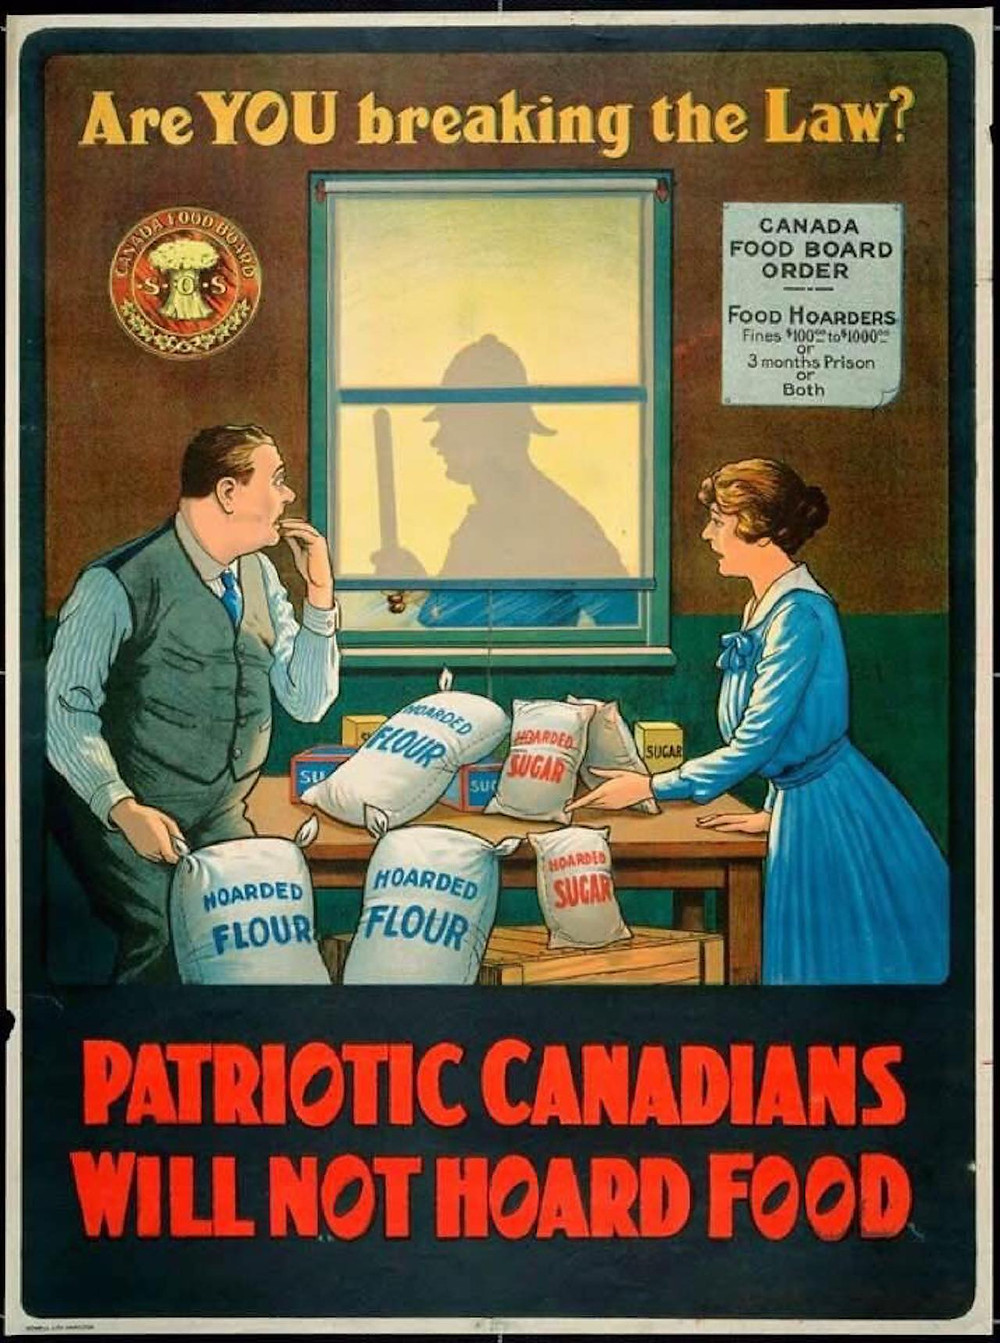 Canadian Food Board poster, 1918